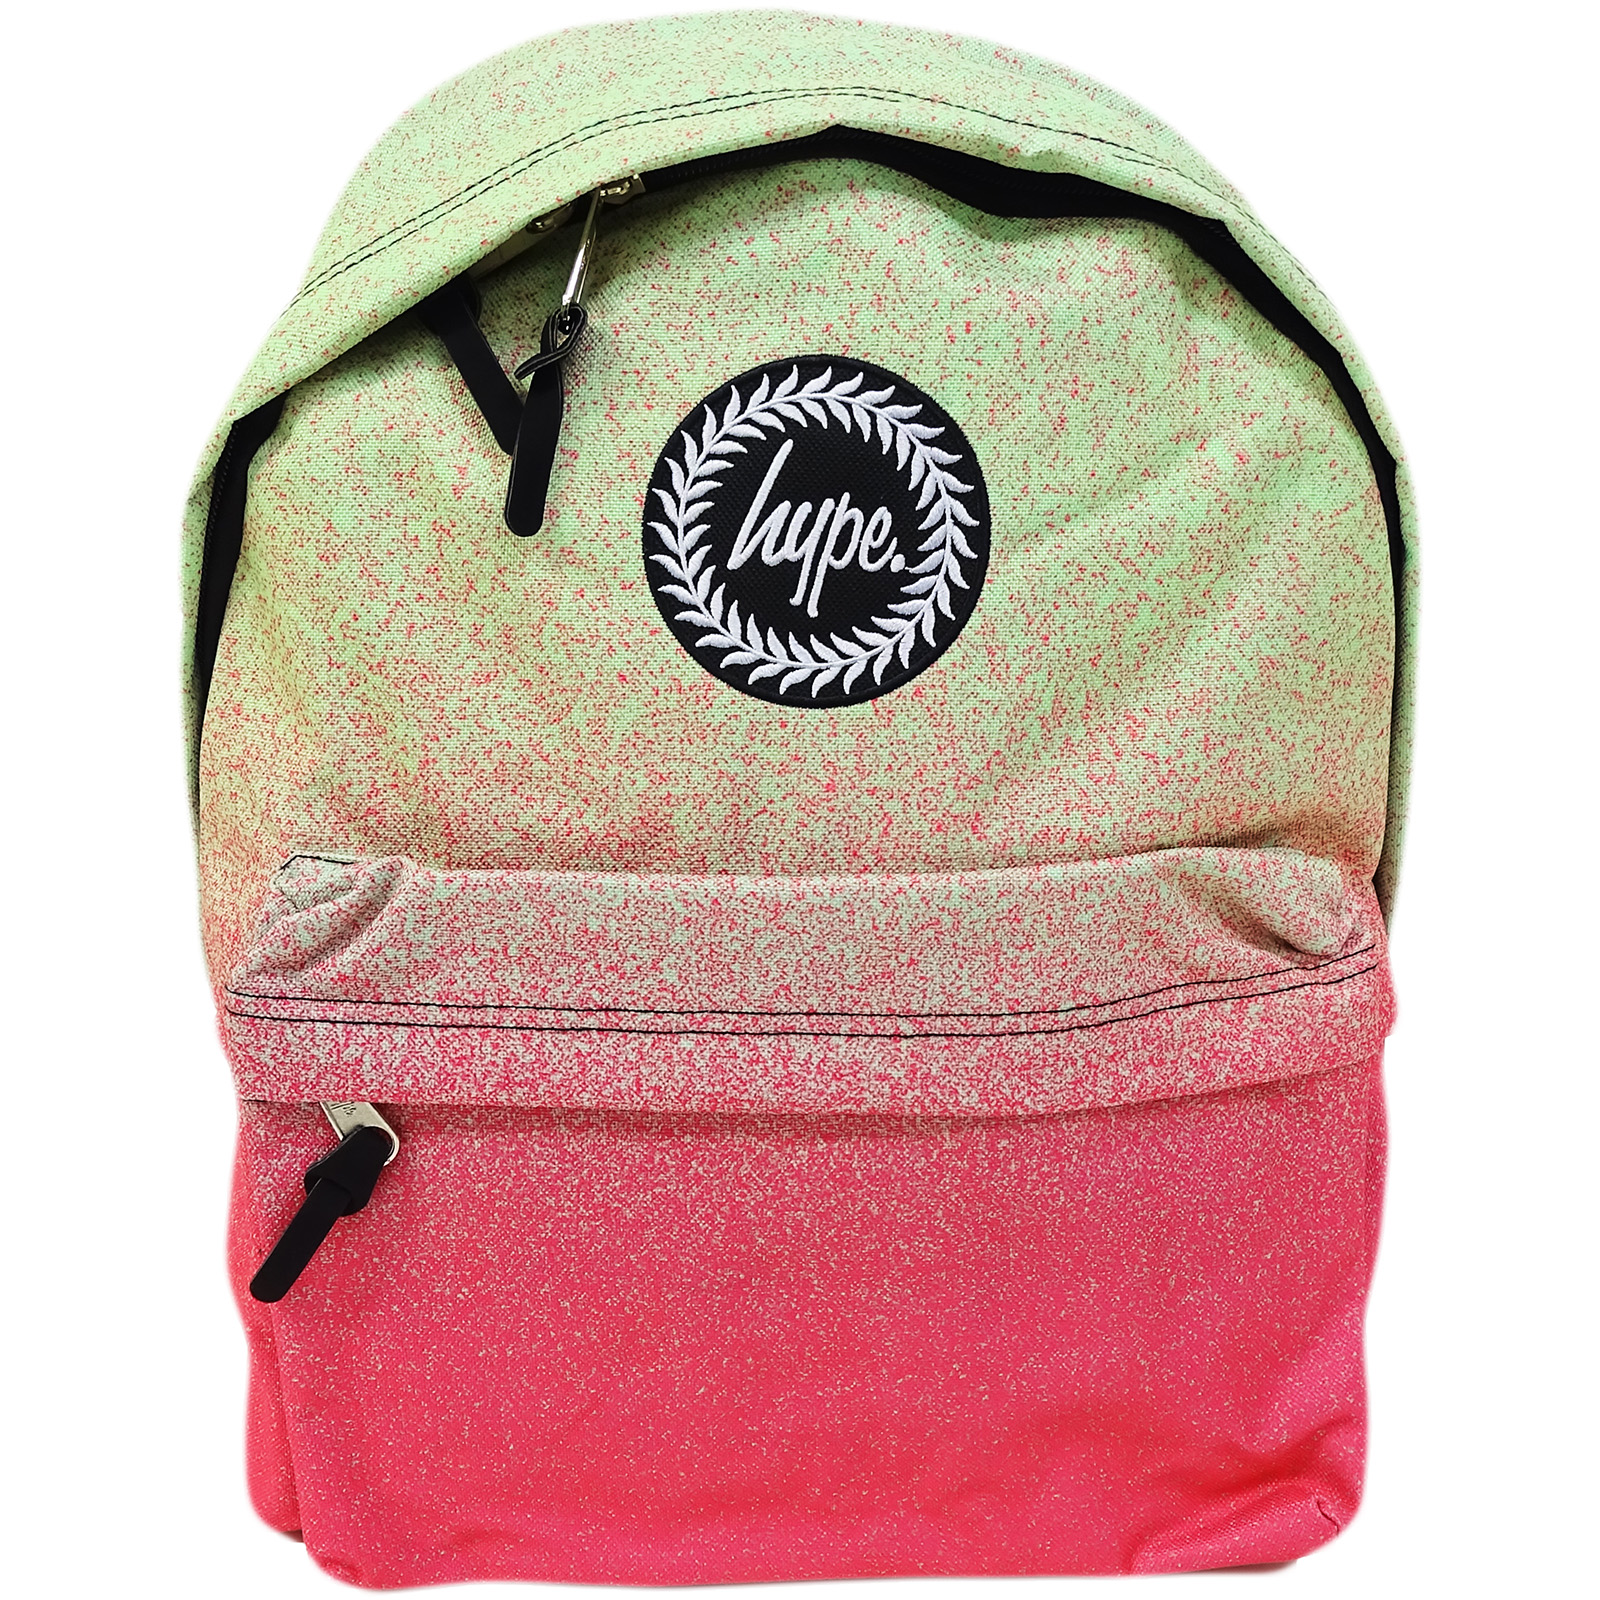 Hype Pink / Green Speckle Fade Backpack / Rucksack Bag Limeade